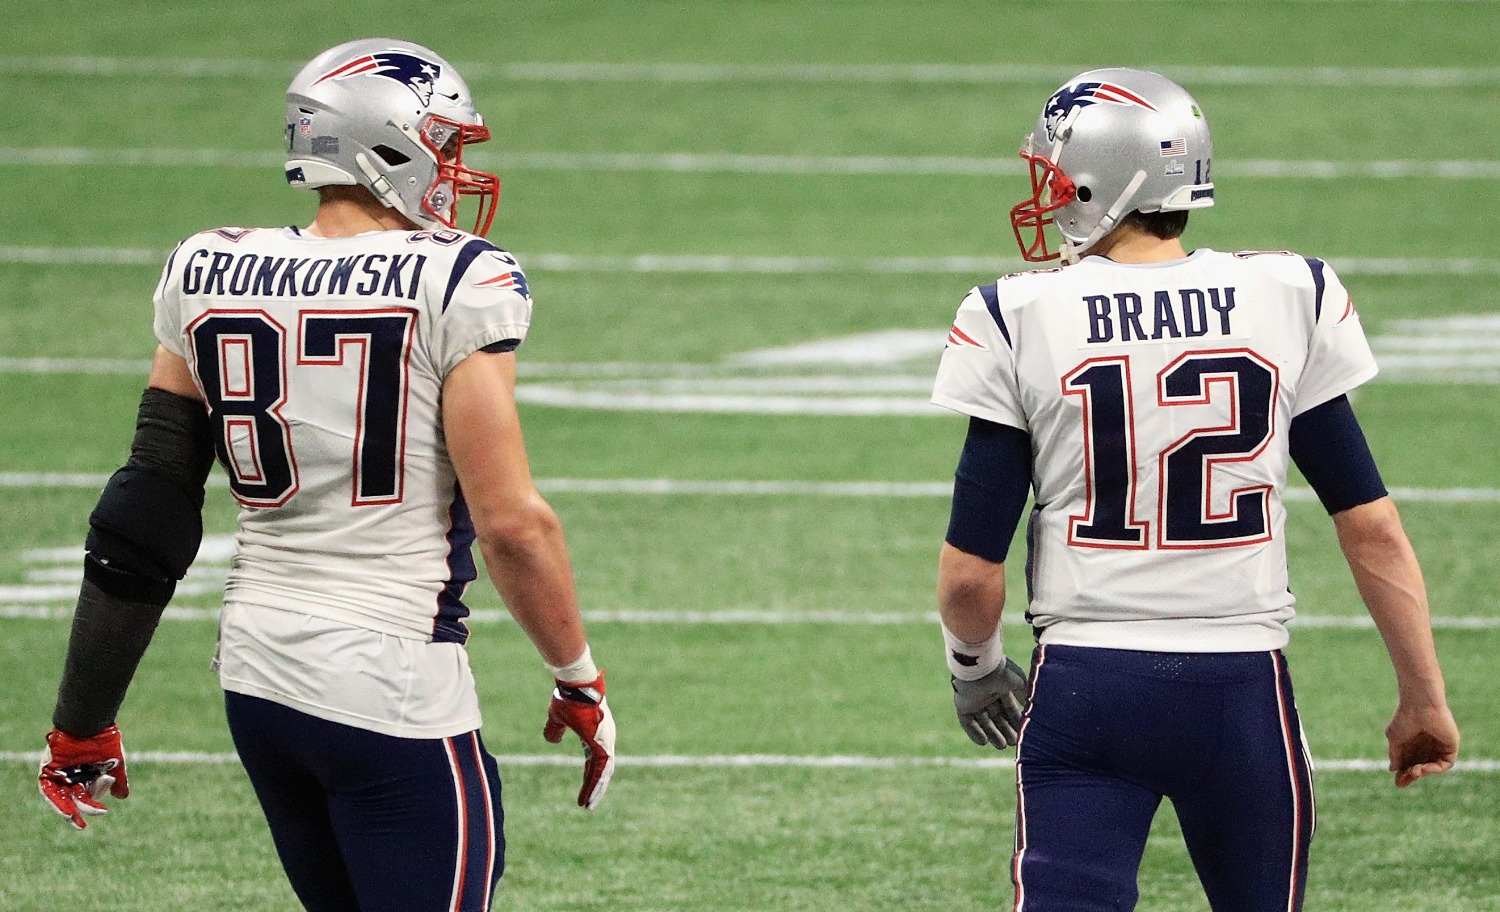 Tom Brady and Rob Gronkowski will play for the Buccaneers in 2020.